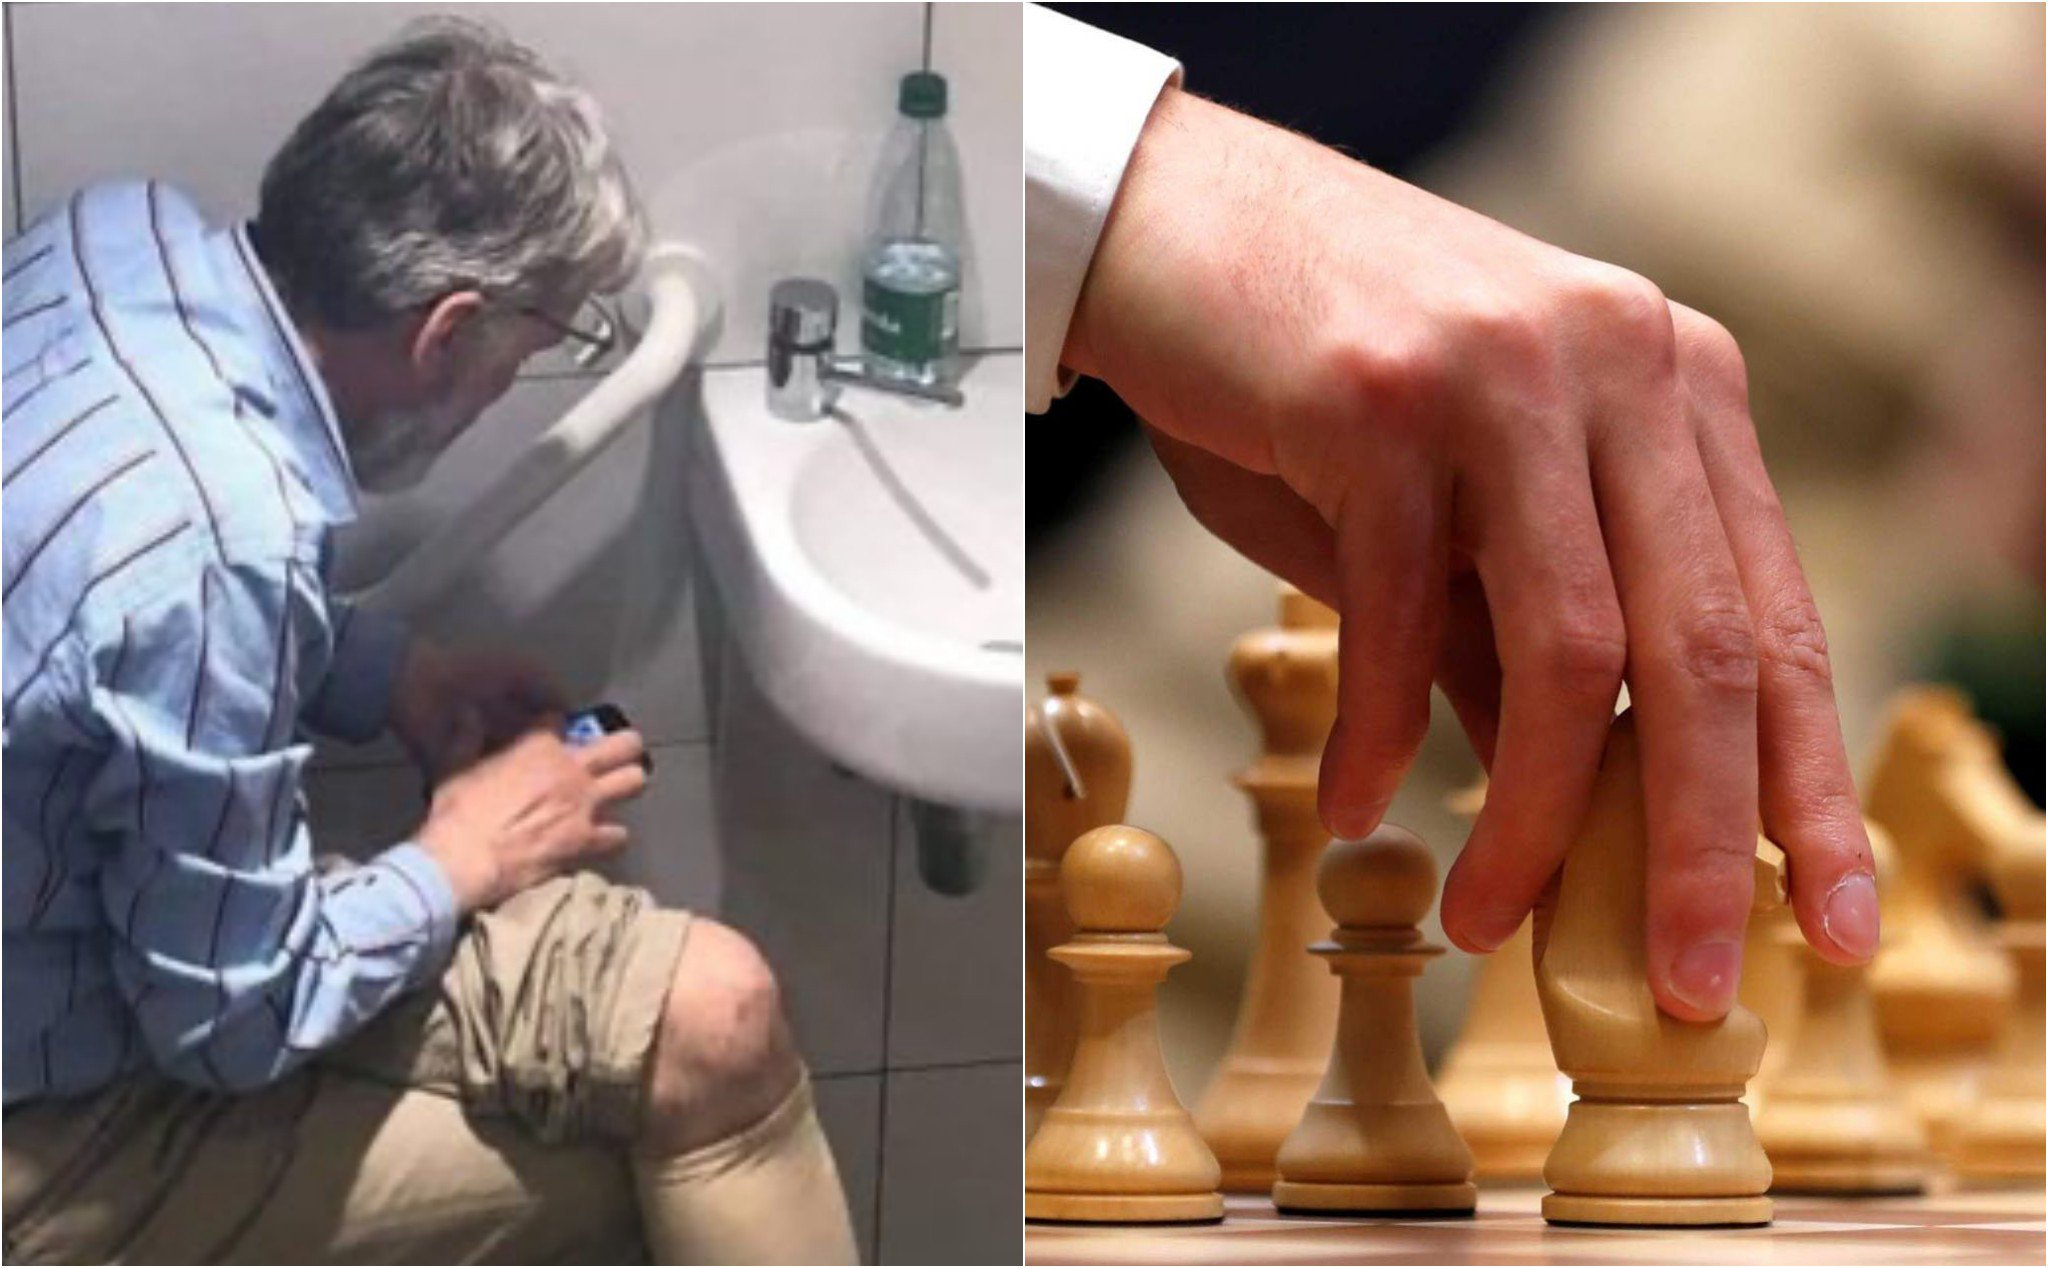 Grandmaster chess cheating, holding the phone into the WC watching the water go between games